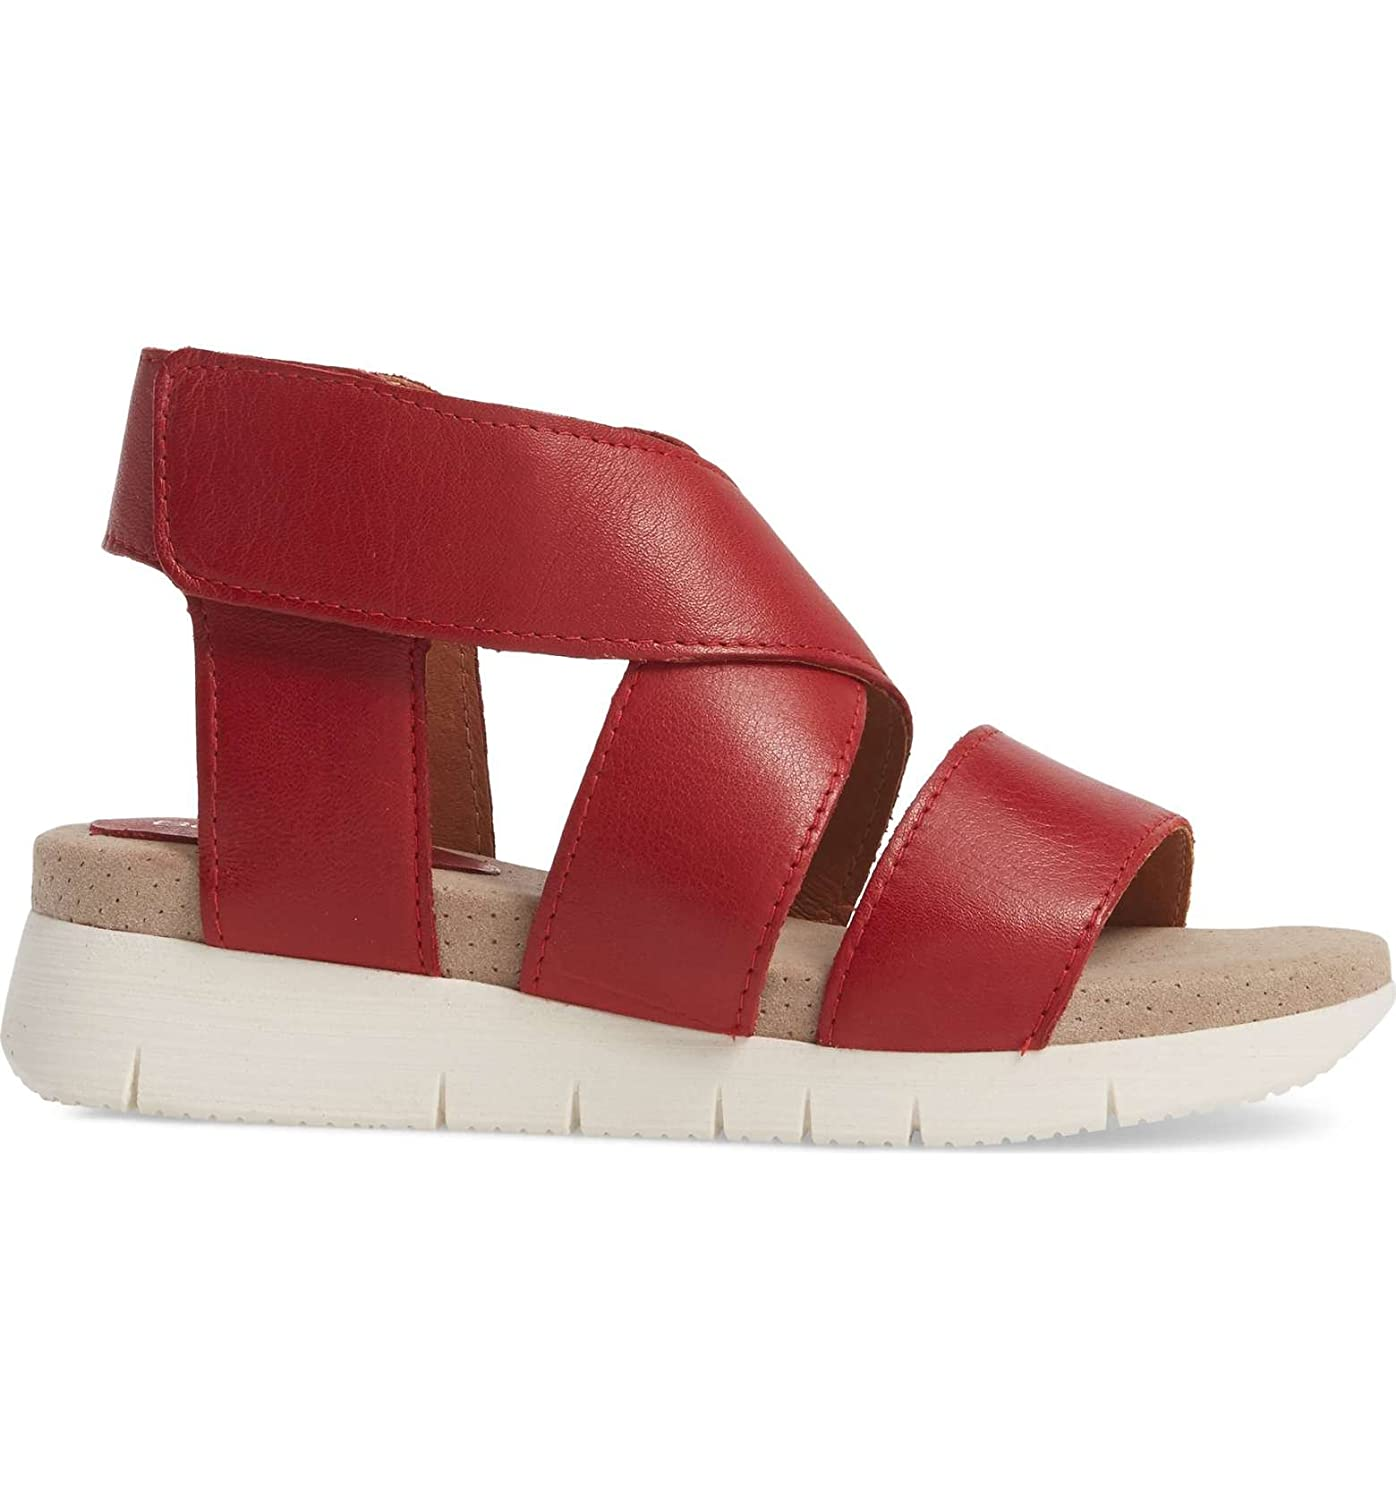 Bos. & Co. Women's Piper Sandal B075GPL4ZX 41 M EU (10 US)|Red Sauvage Leather